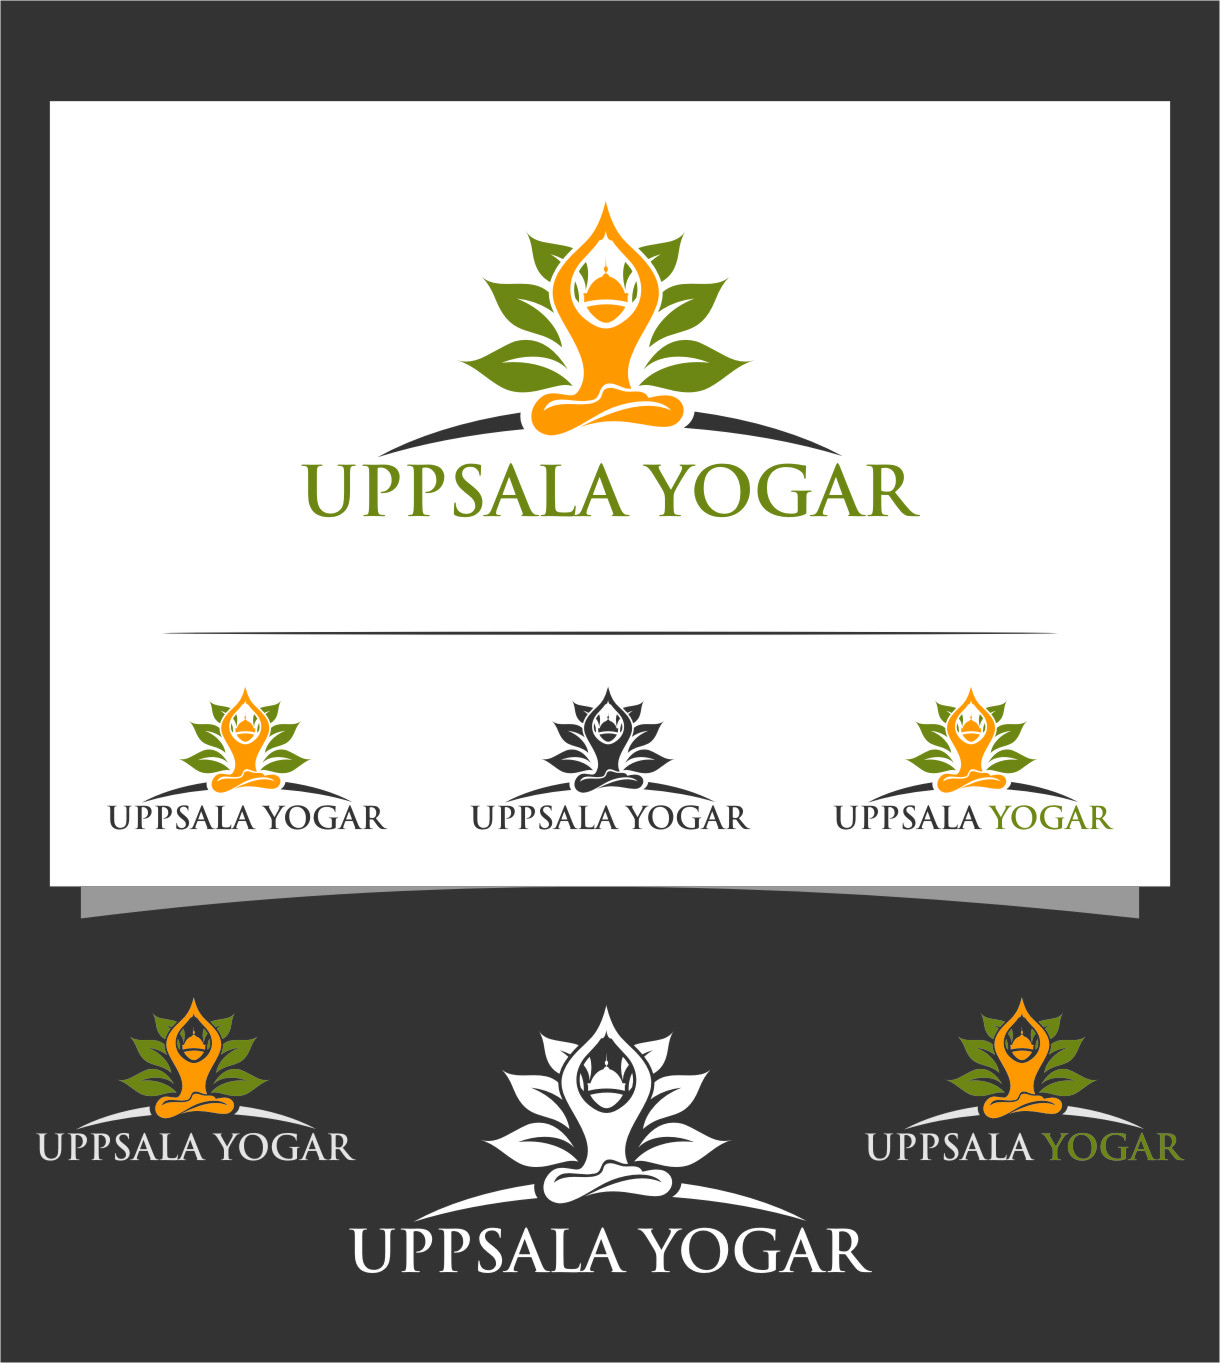 Logo Design by Ngepet_art - Entry No. 62 in the Logo Design Contest Unique Logo Design Wanted for Uppsala Yogar.